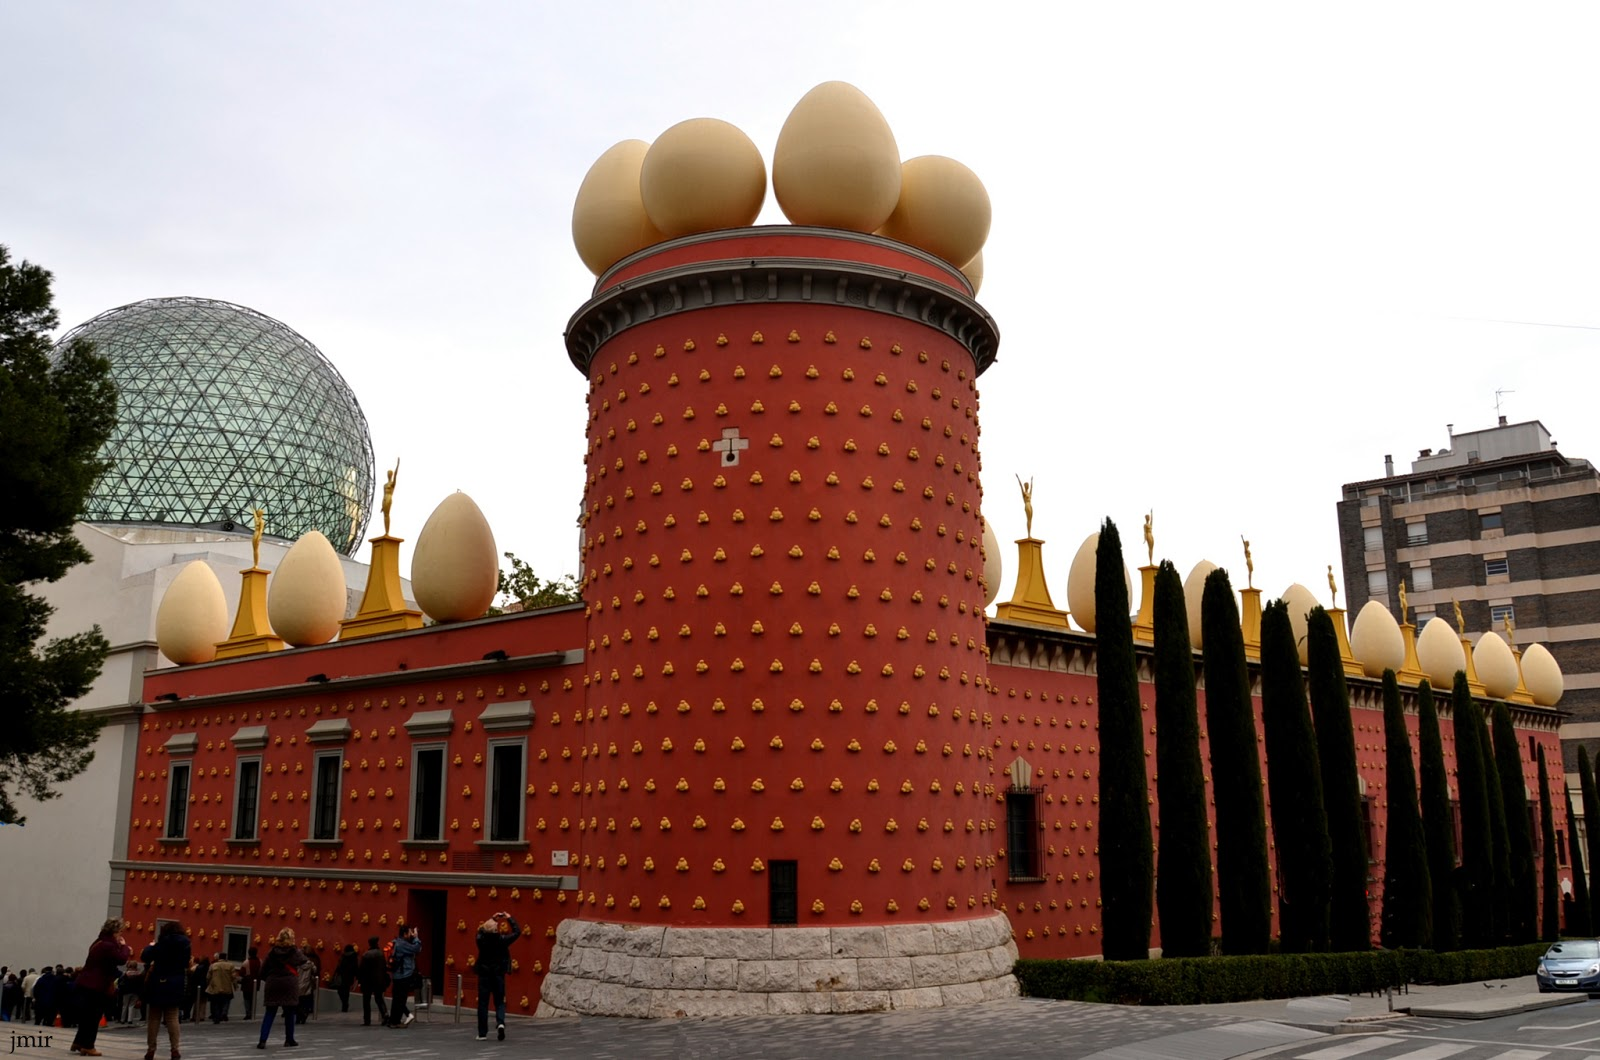 Craziest Architecture Of All Time That Can Make You To Look It Twice 7